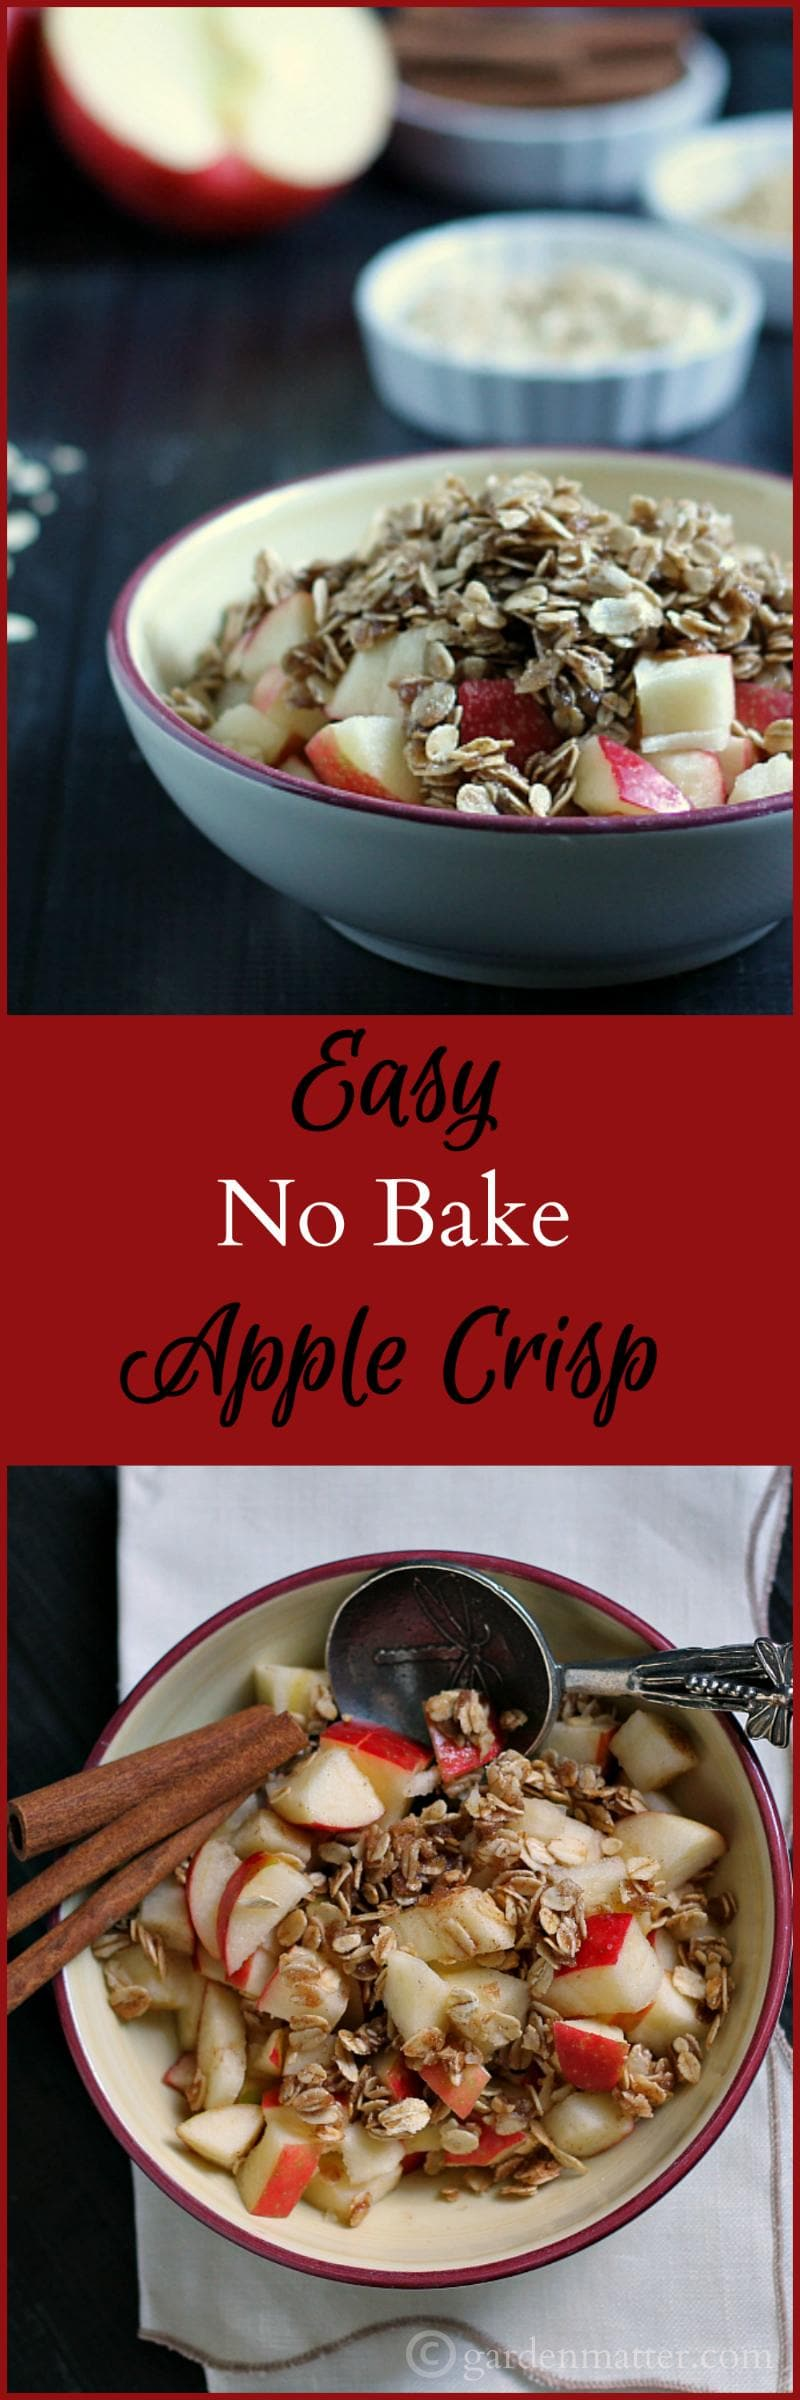 Learn how to make this simple, easy no bake apple crisp treat, that you can put together in about 5 minutes